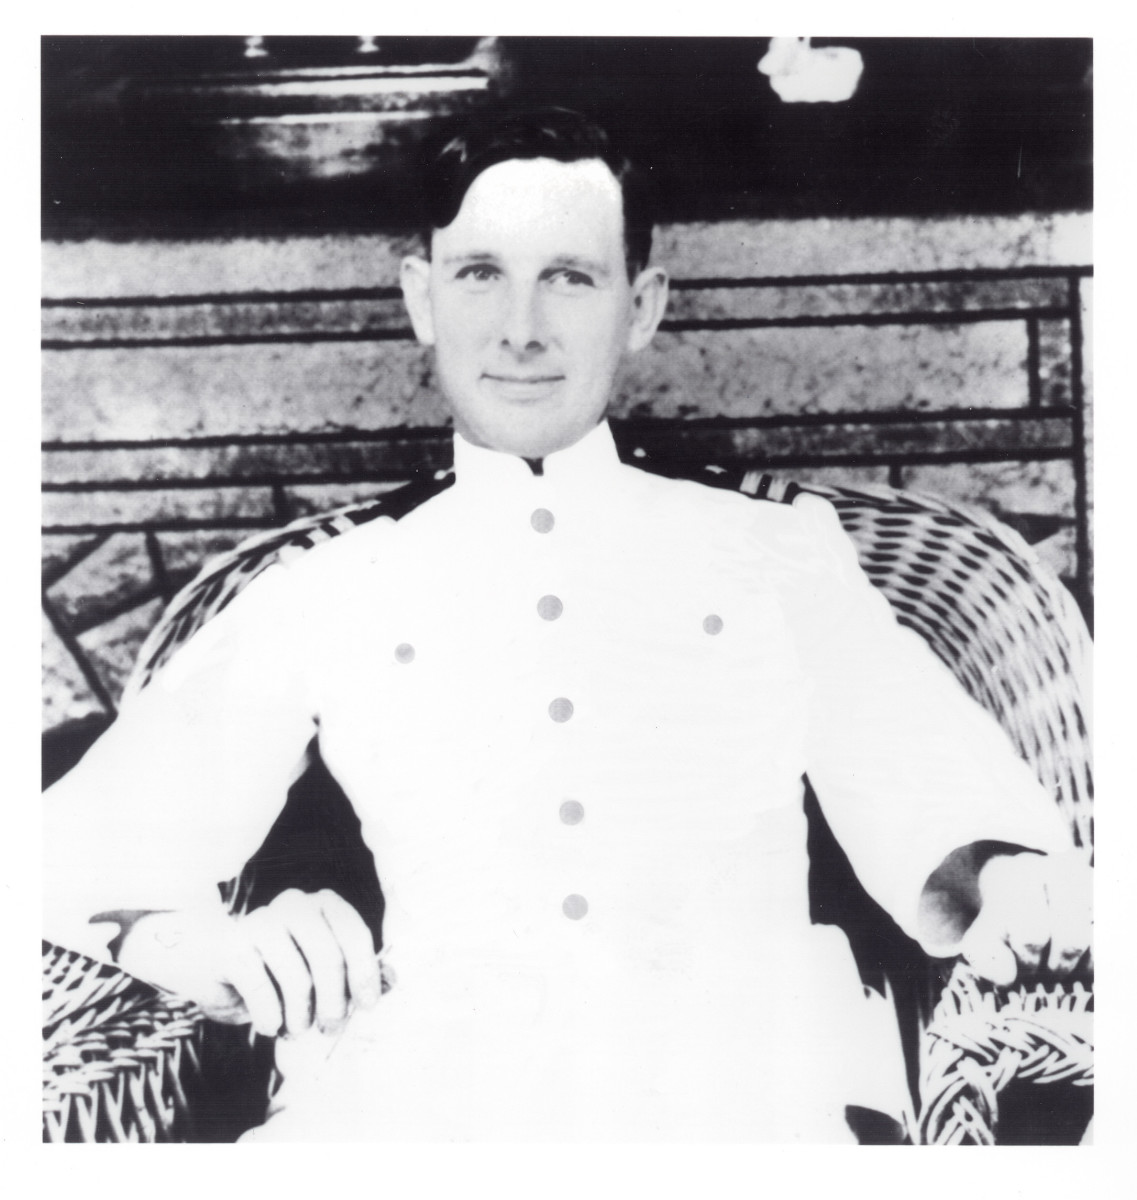 Captain Joseph John Rochefort was a major figure in the U.S. Navy's cryptologic and intelligence developments from 1925 to 1947.